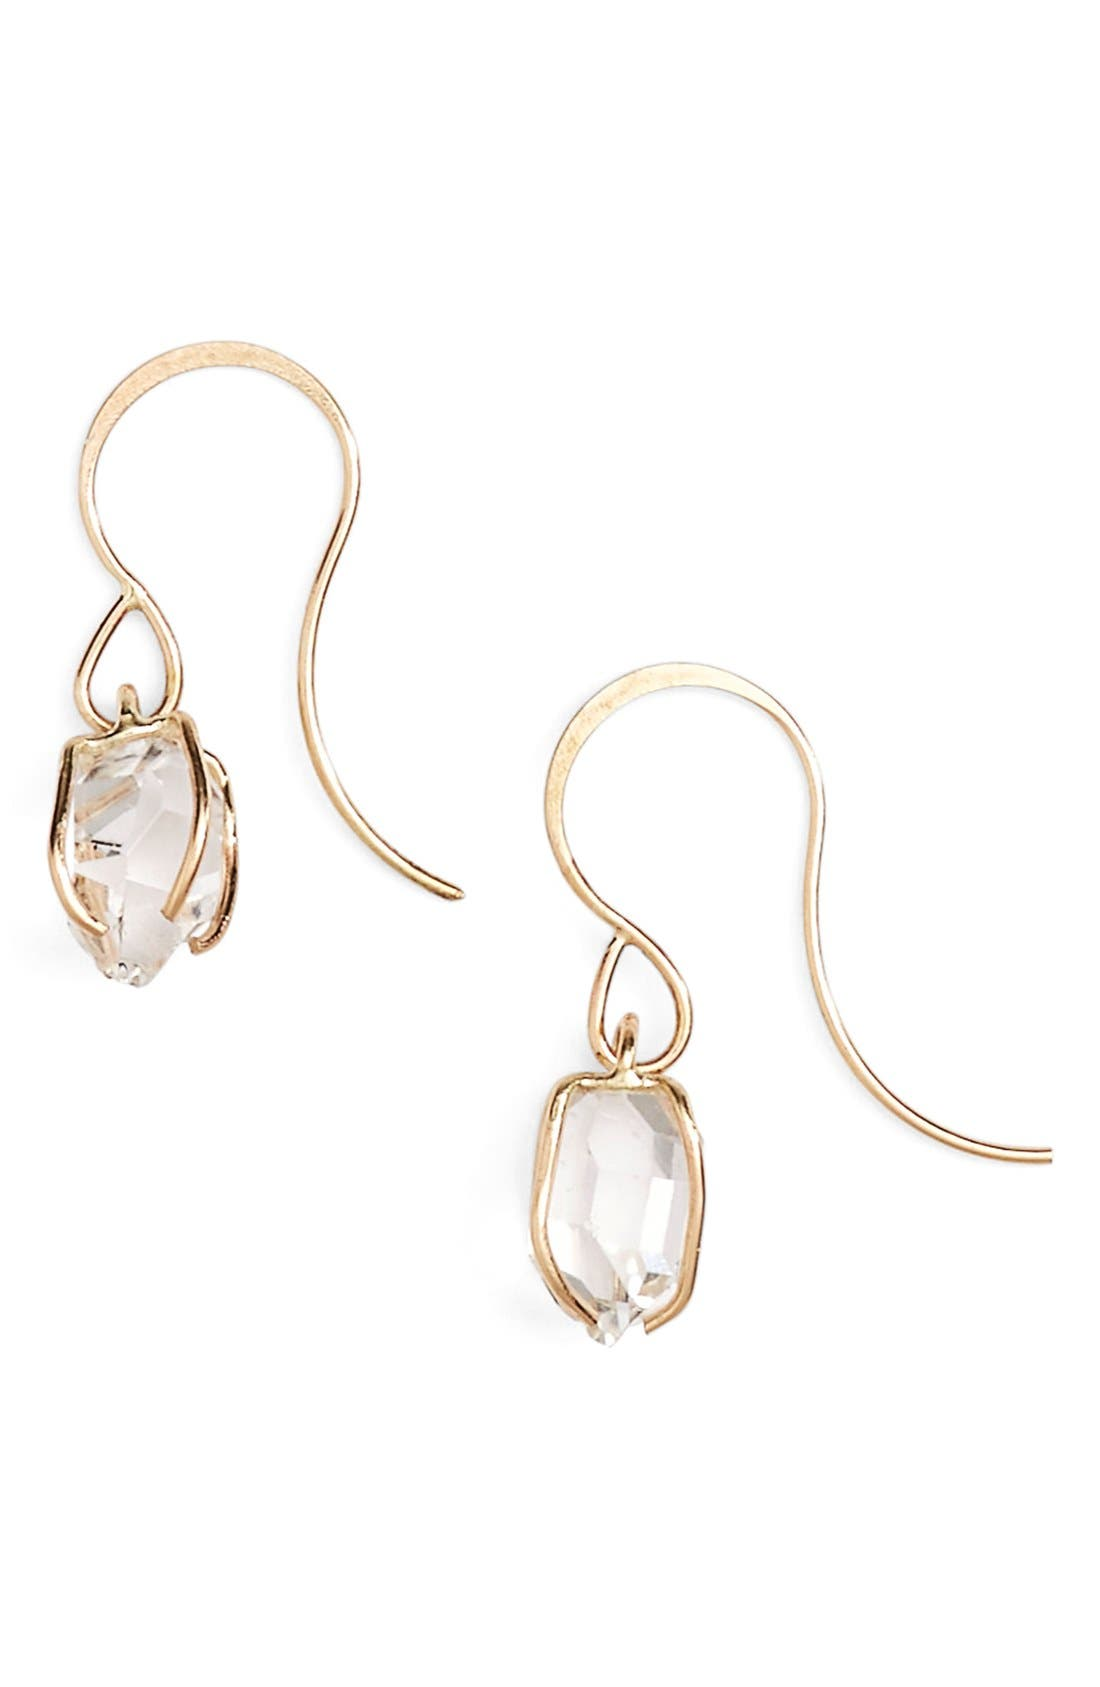 MELISSA JOY MANNING Herkimer Diamond Drop Earrings